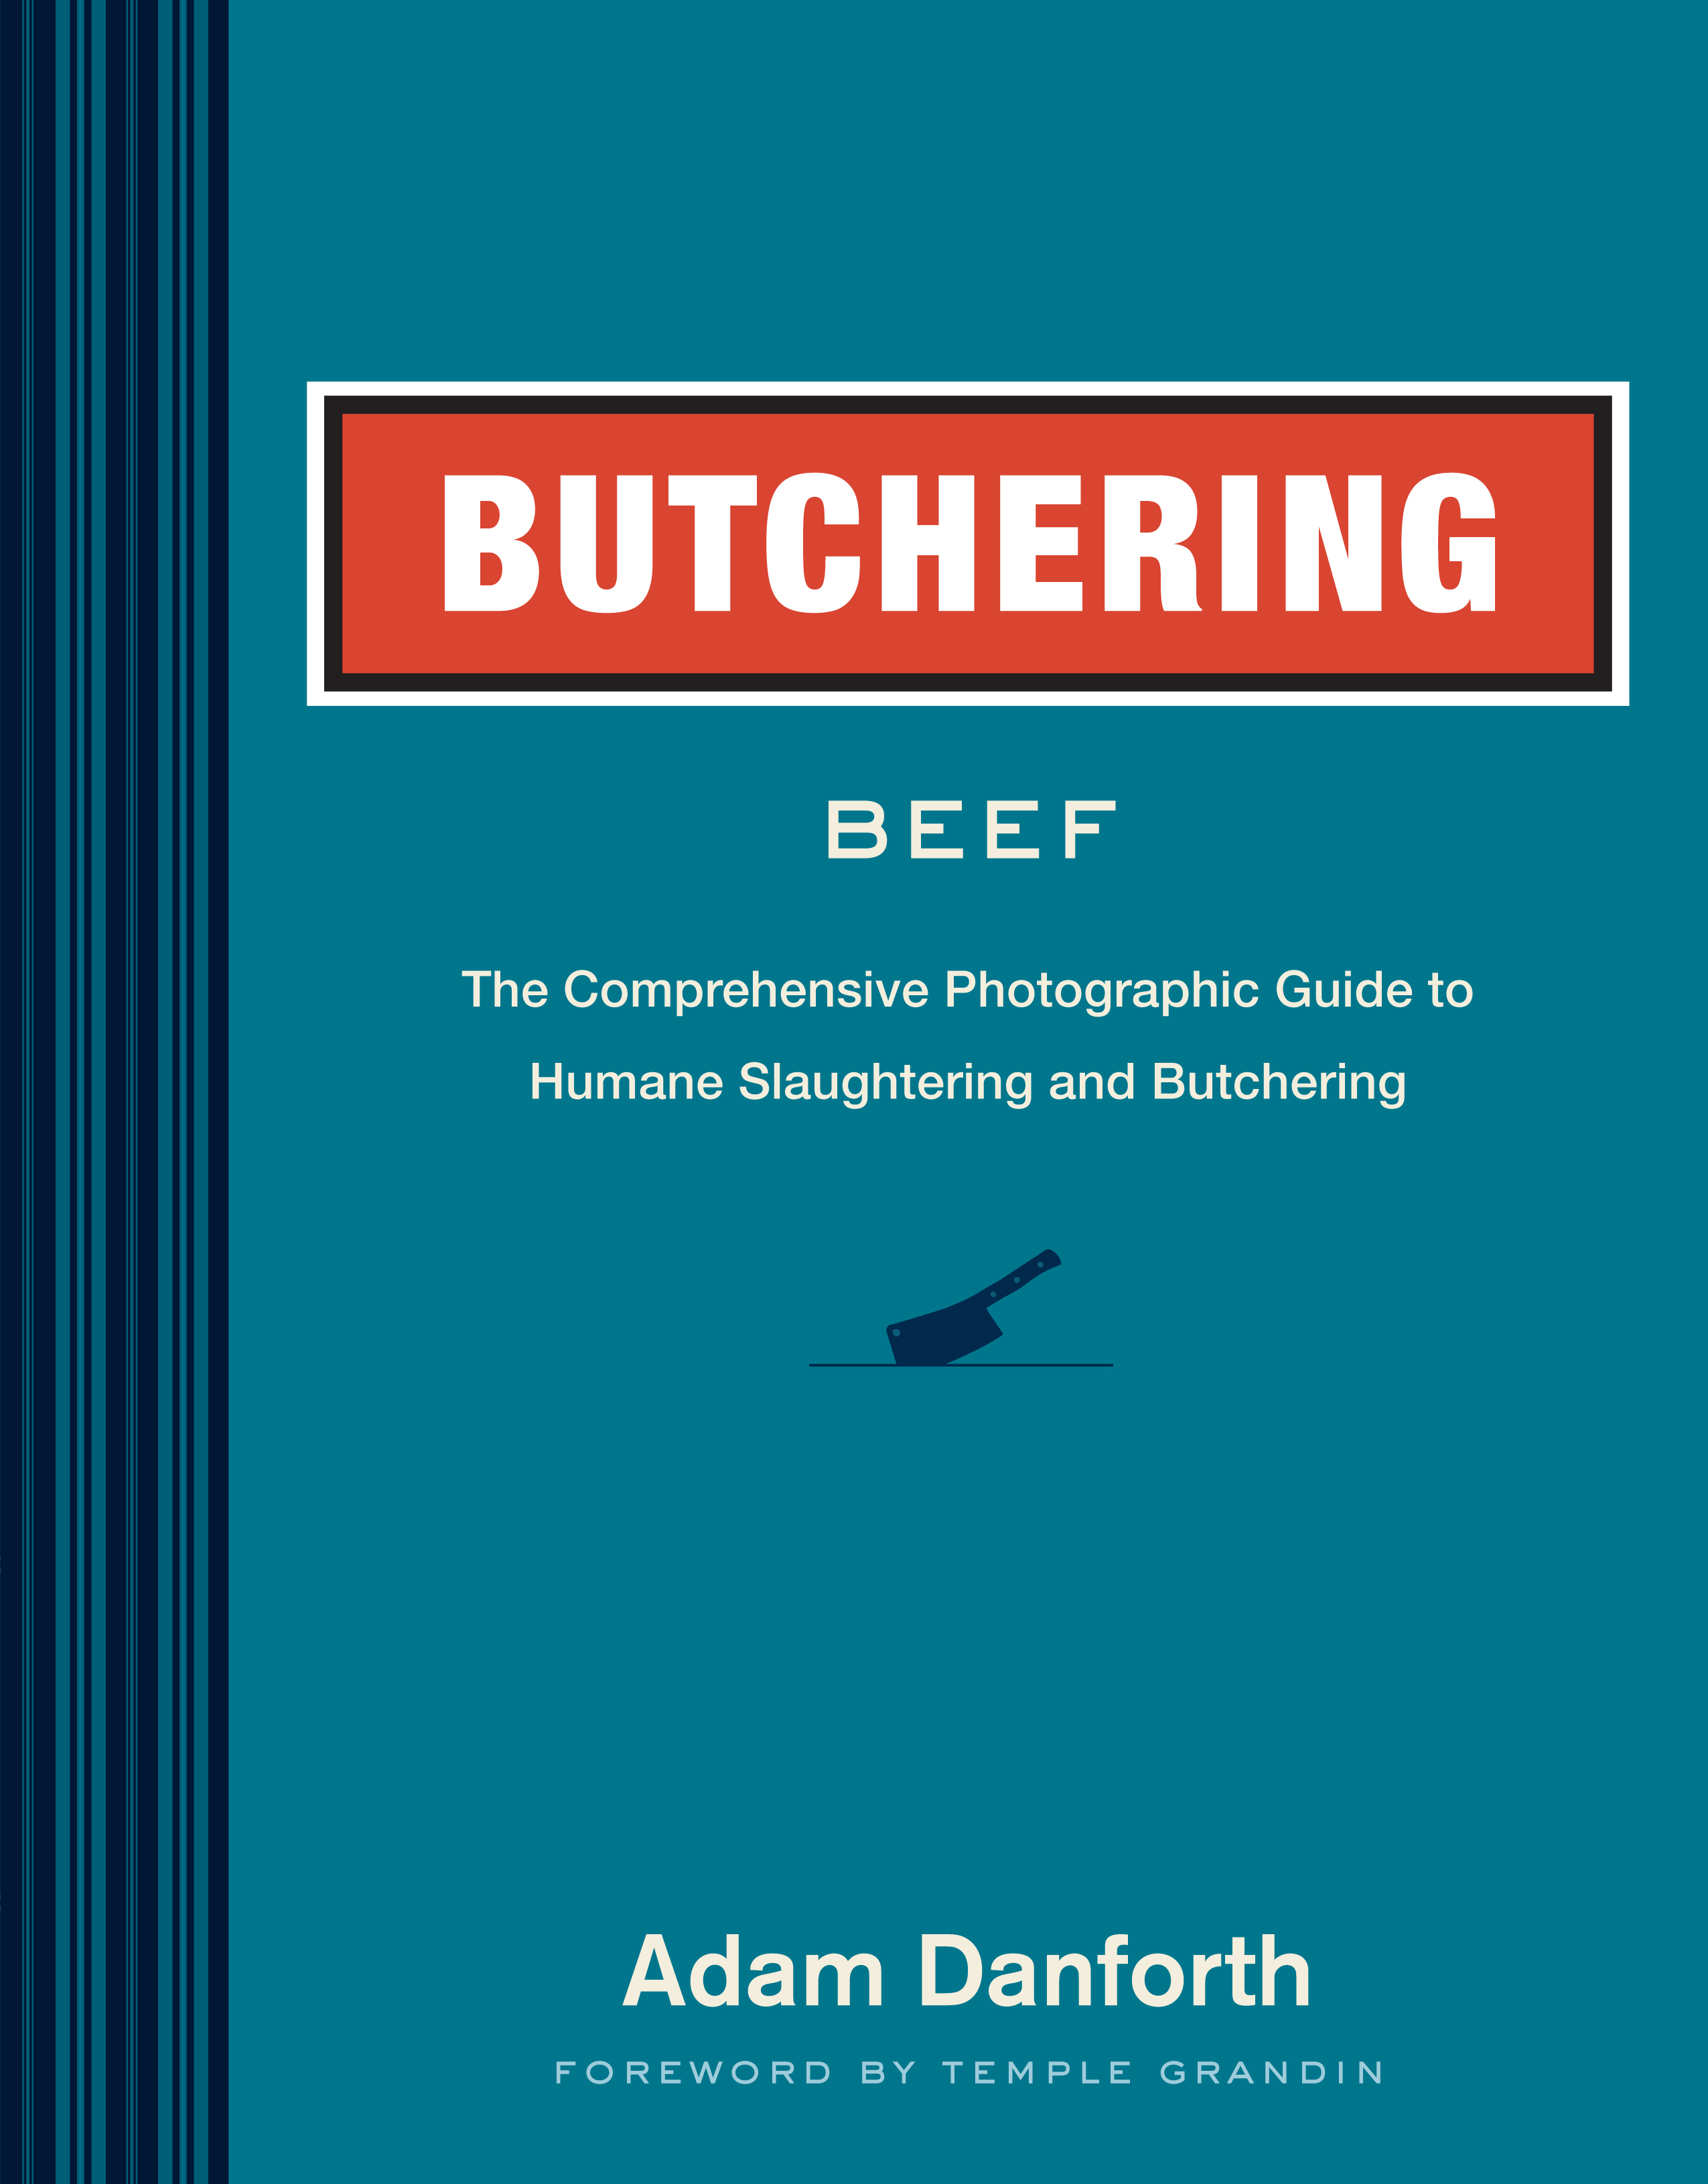 Butchering Beef The Comprehensive Photographic Guide to Humane Slaughtering and Butchering - Adam Danforth